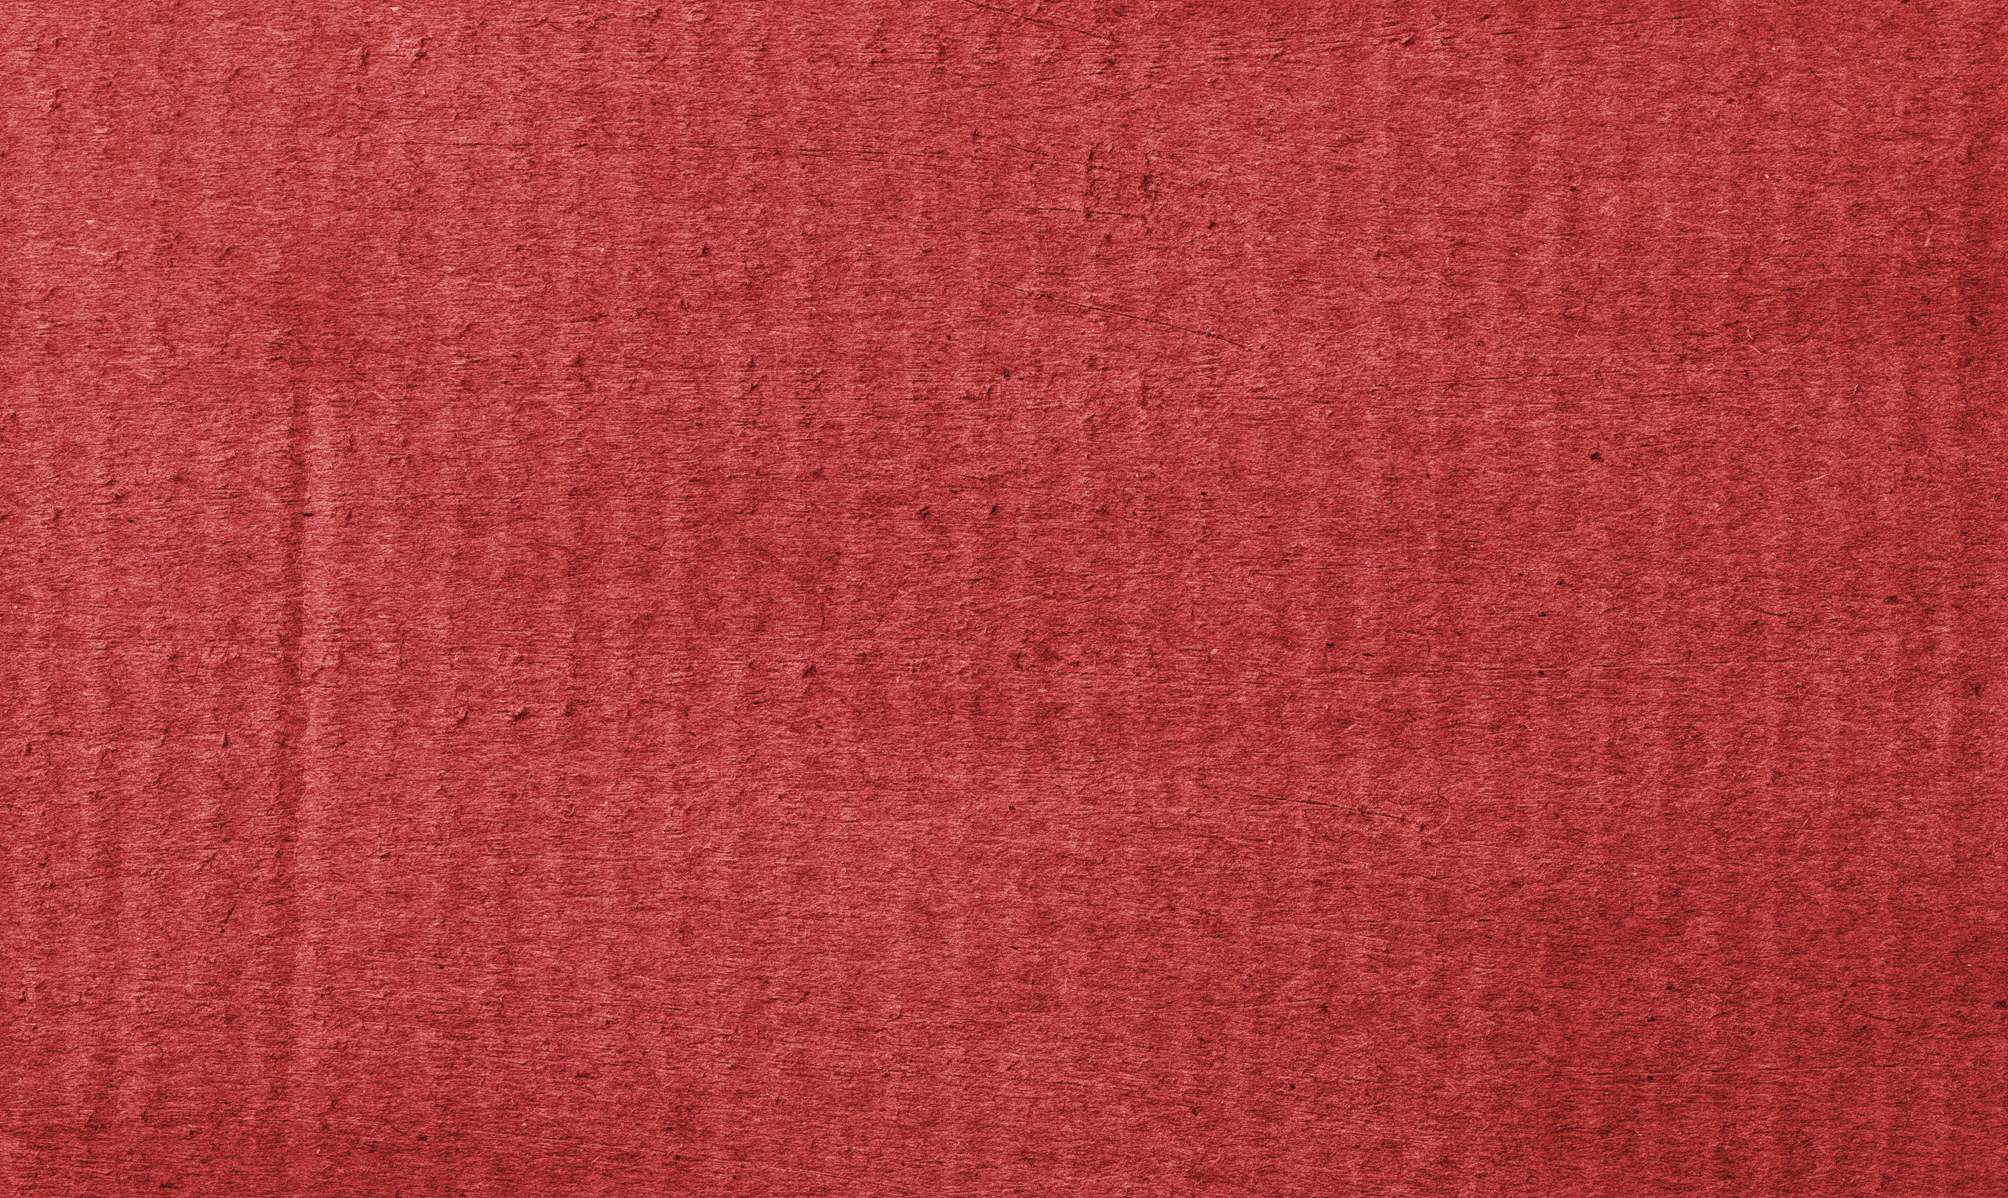 Red Cardboard Texture Background PhotoHDX